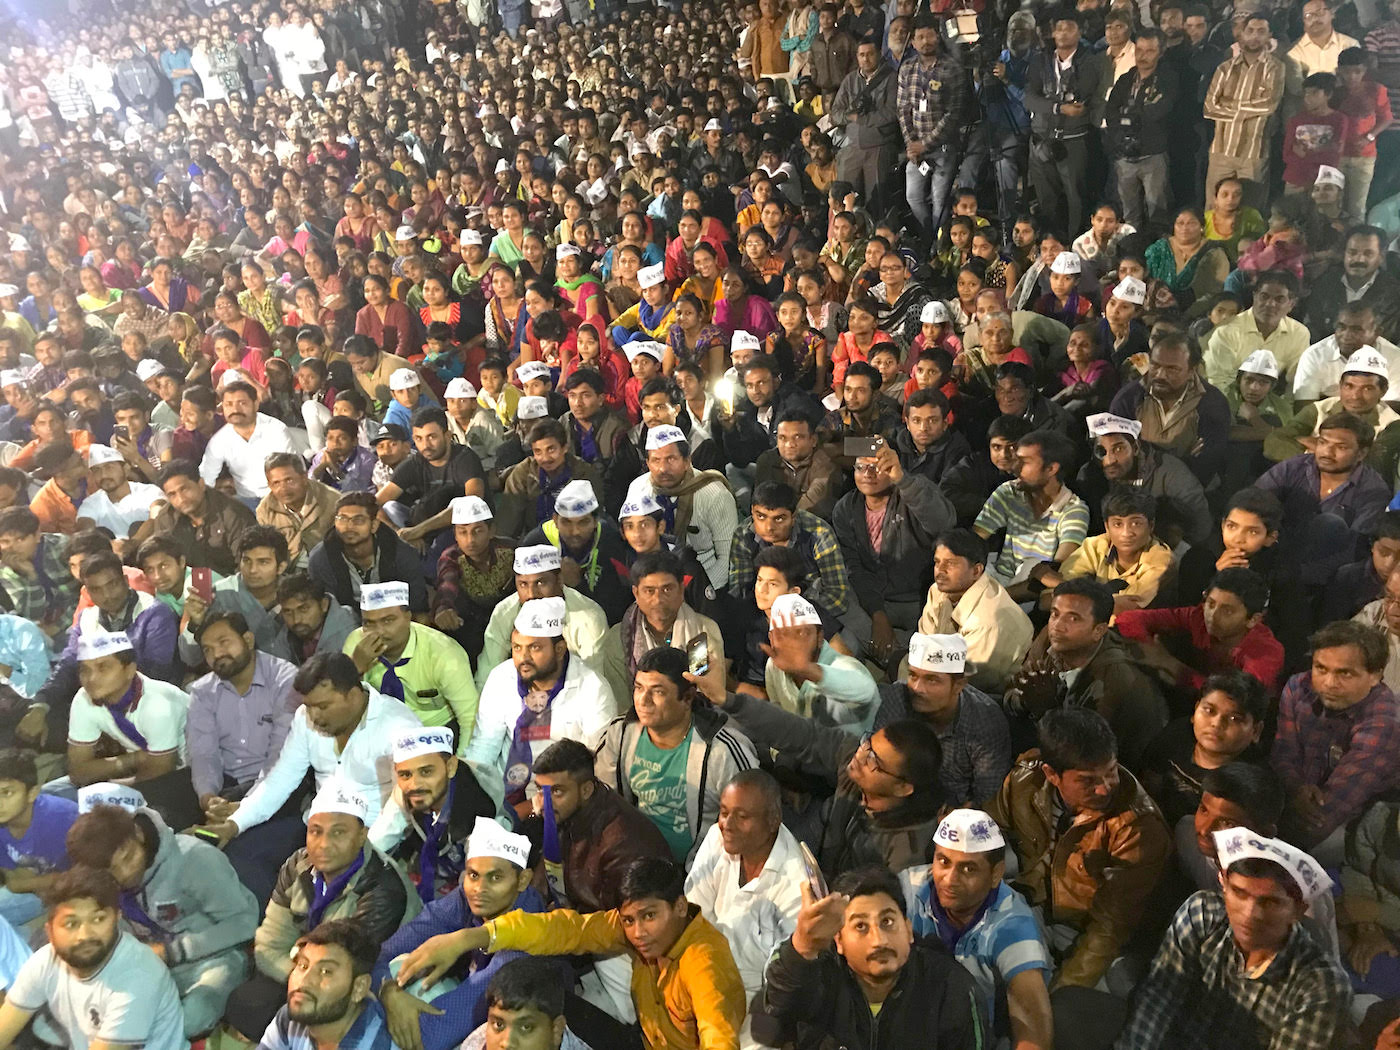 Hardik Patel's supporters wear caps that say 'Jai Hind, Jai Patidar'. Photo credit: Supriya Sharma